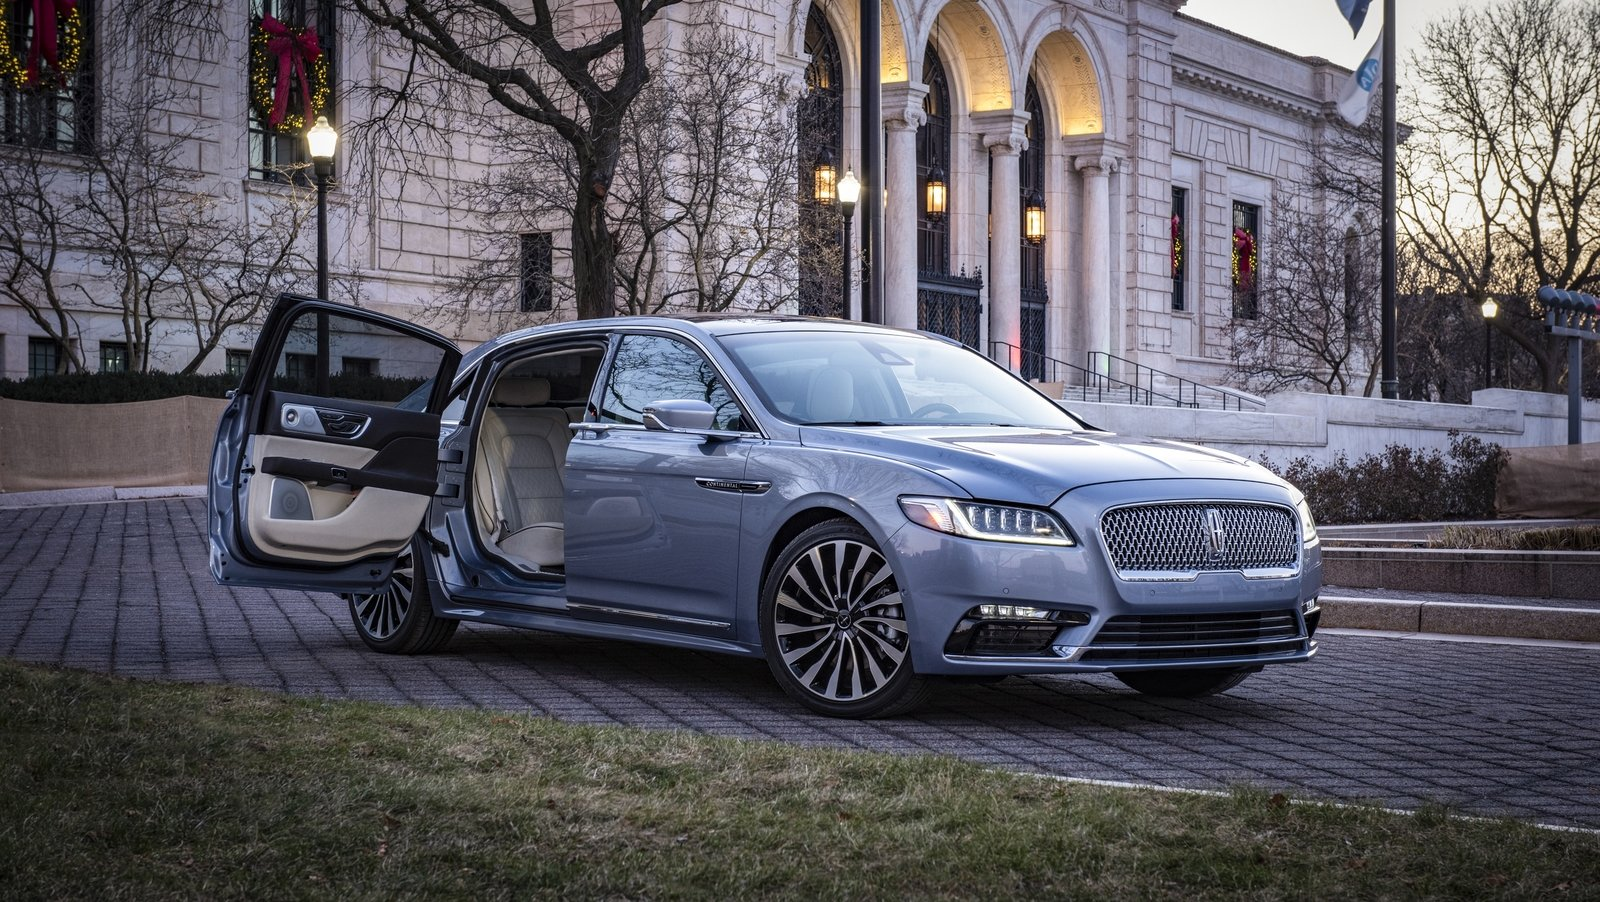 Dodge Latest Models >> 2020 Lincoln Continental Coach Door Edition